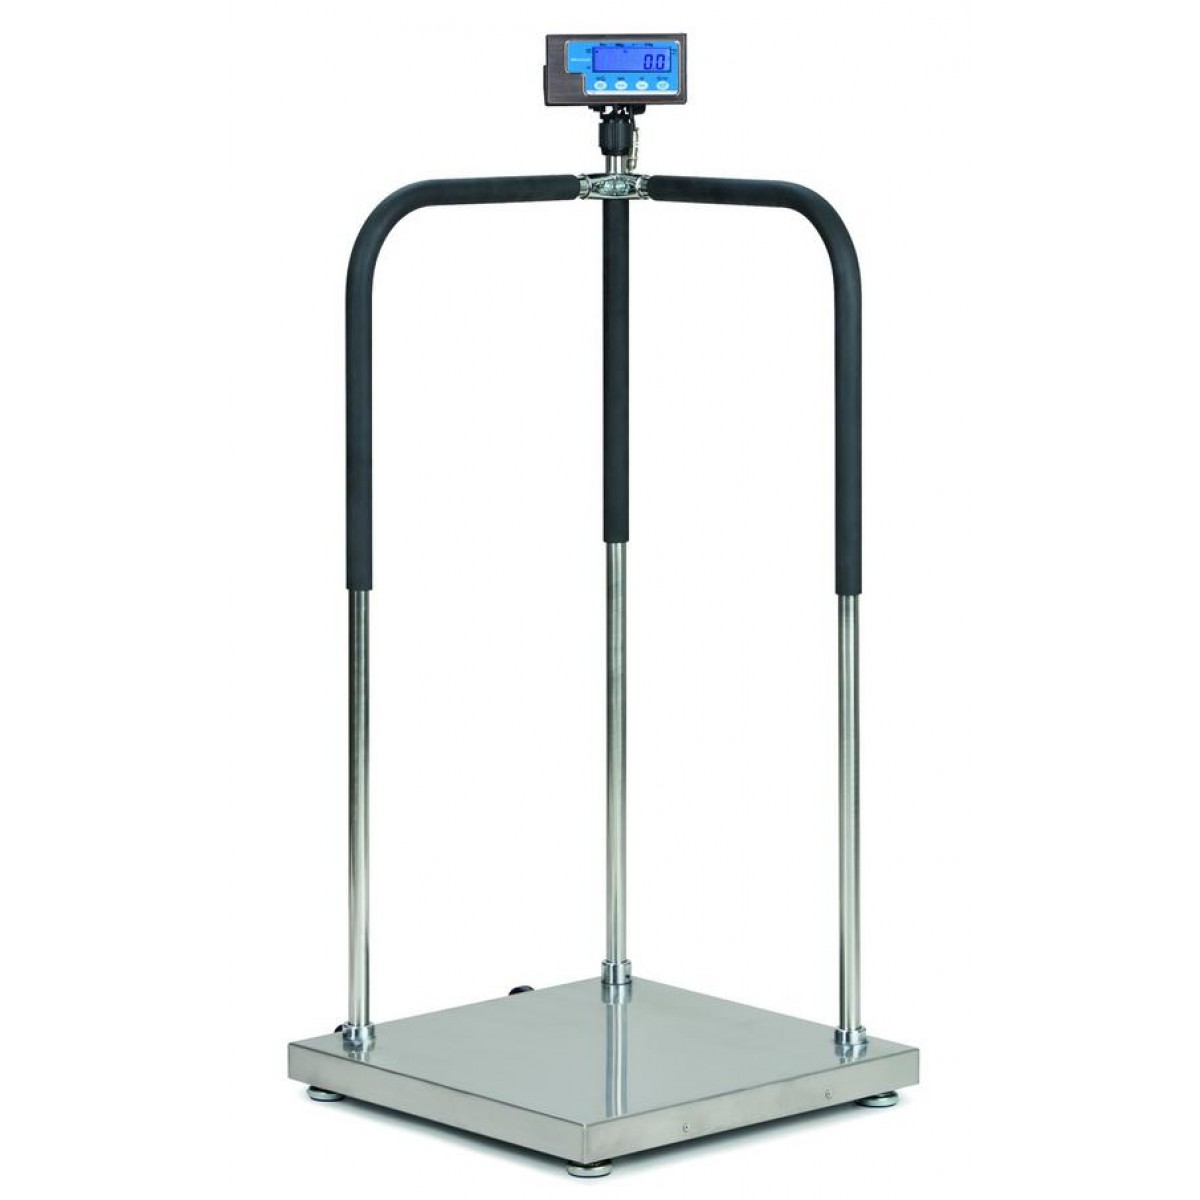 Scale With Handrails : Brecknell ms bariatric physician scale with